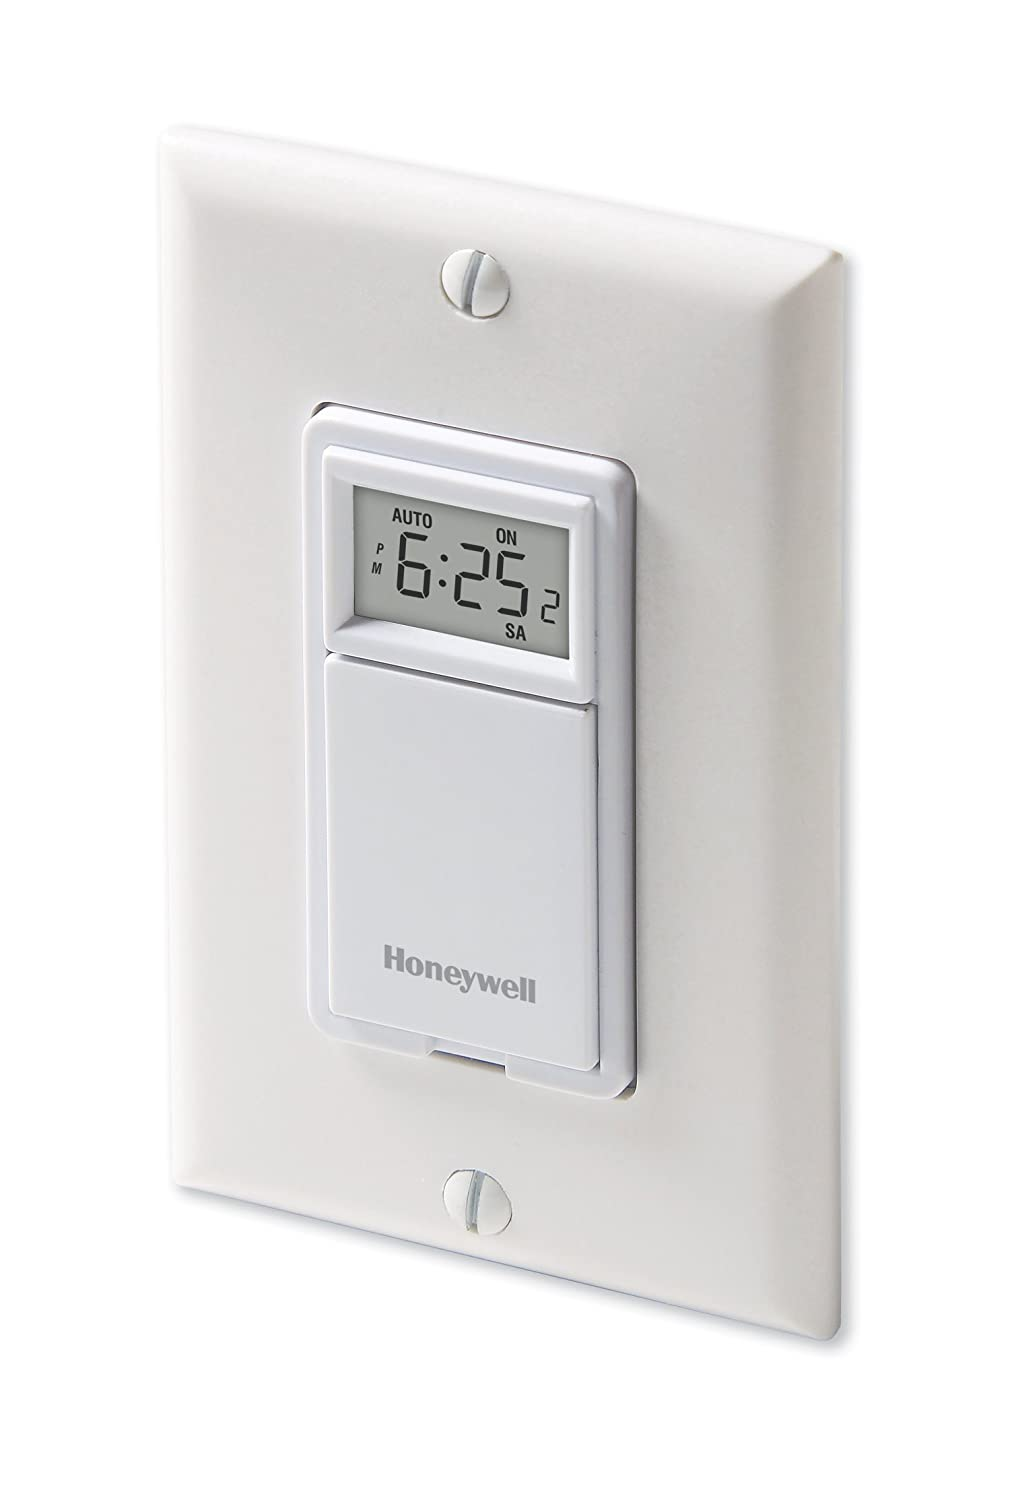 wire a whole house fan images details about honeywell 7 day programmable timer new